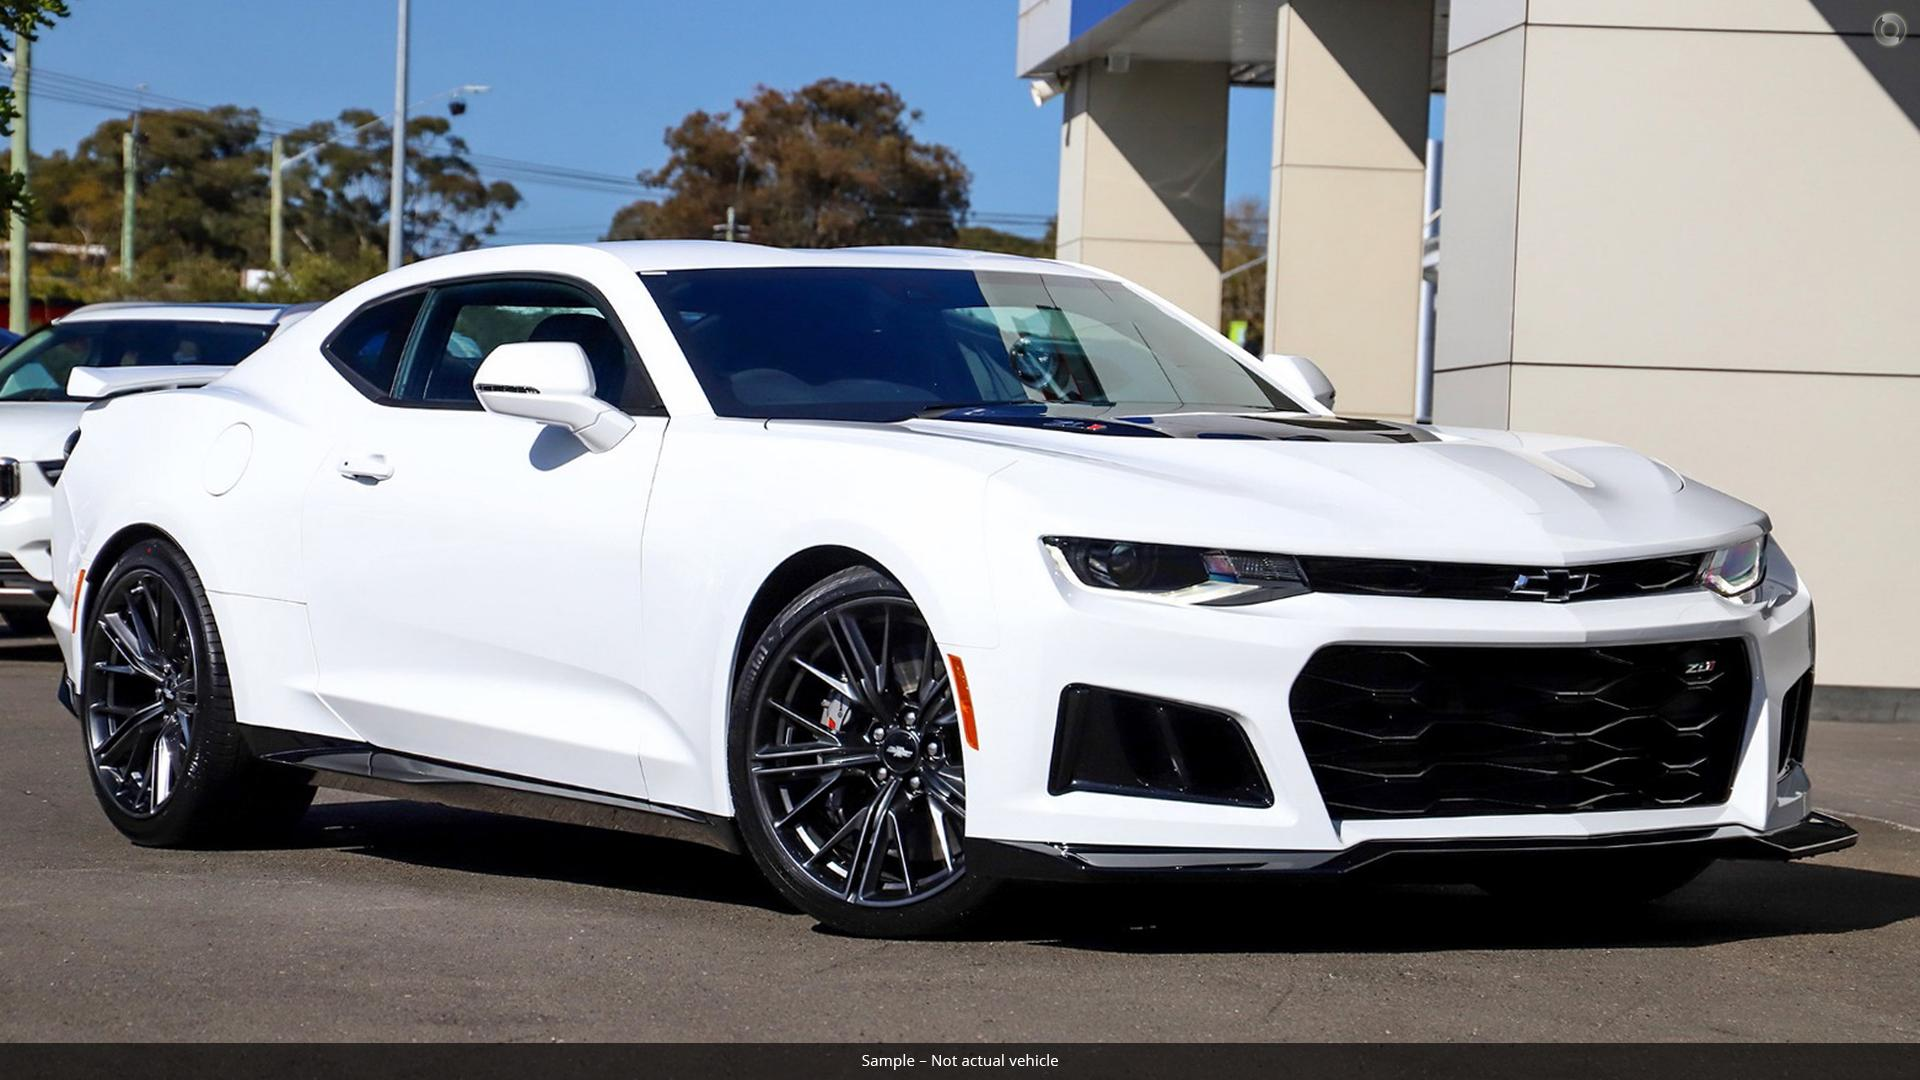 2019 Chevrolet Camaro (No Series)